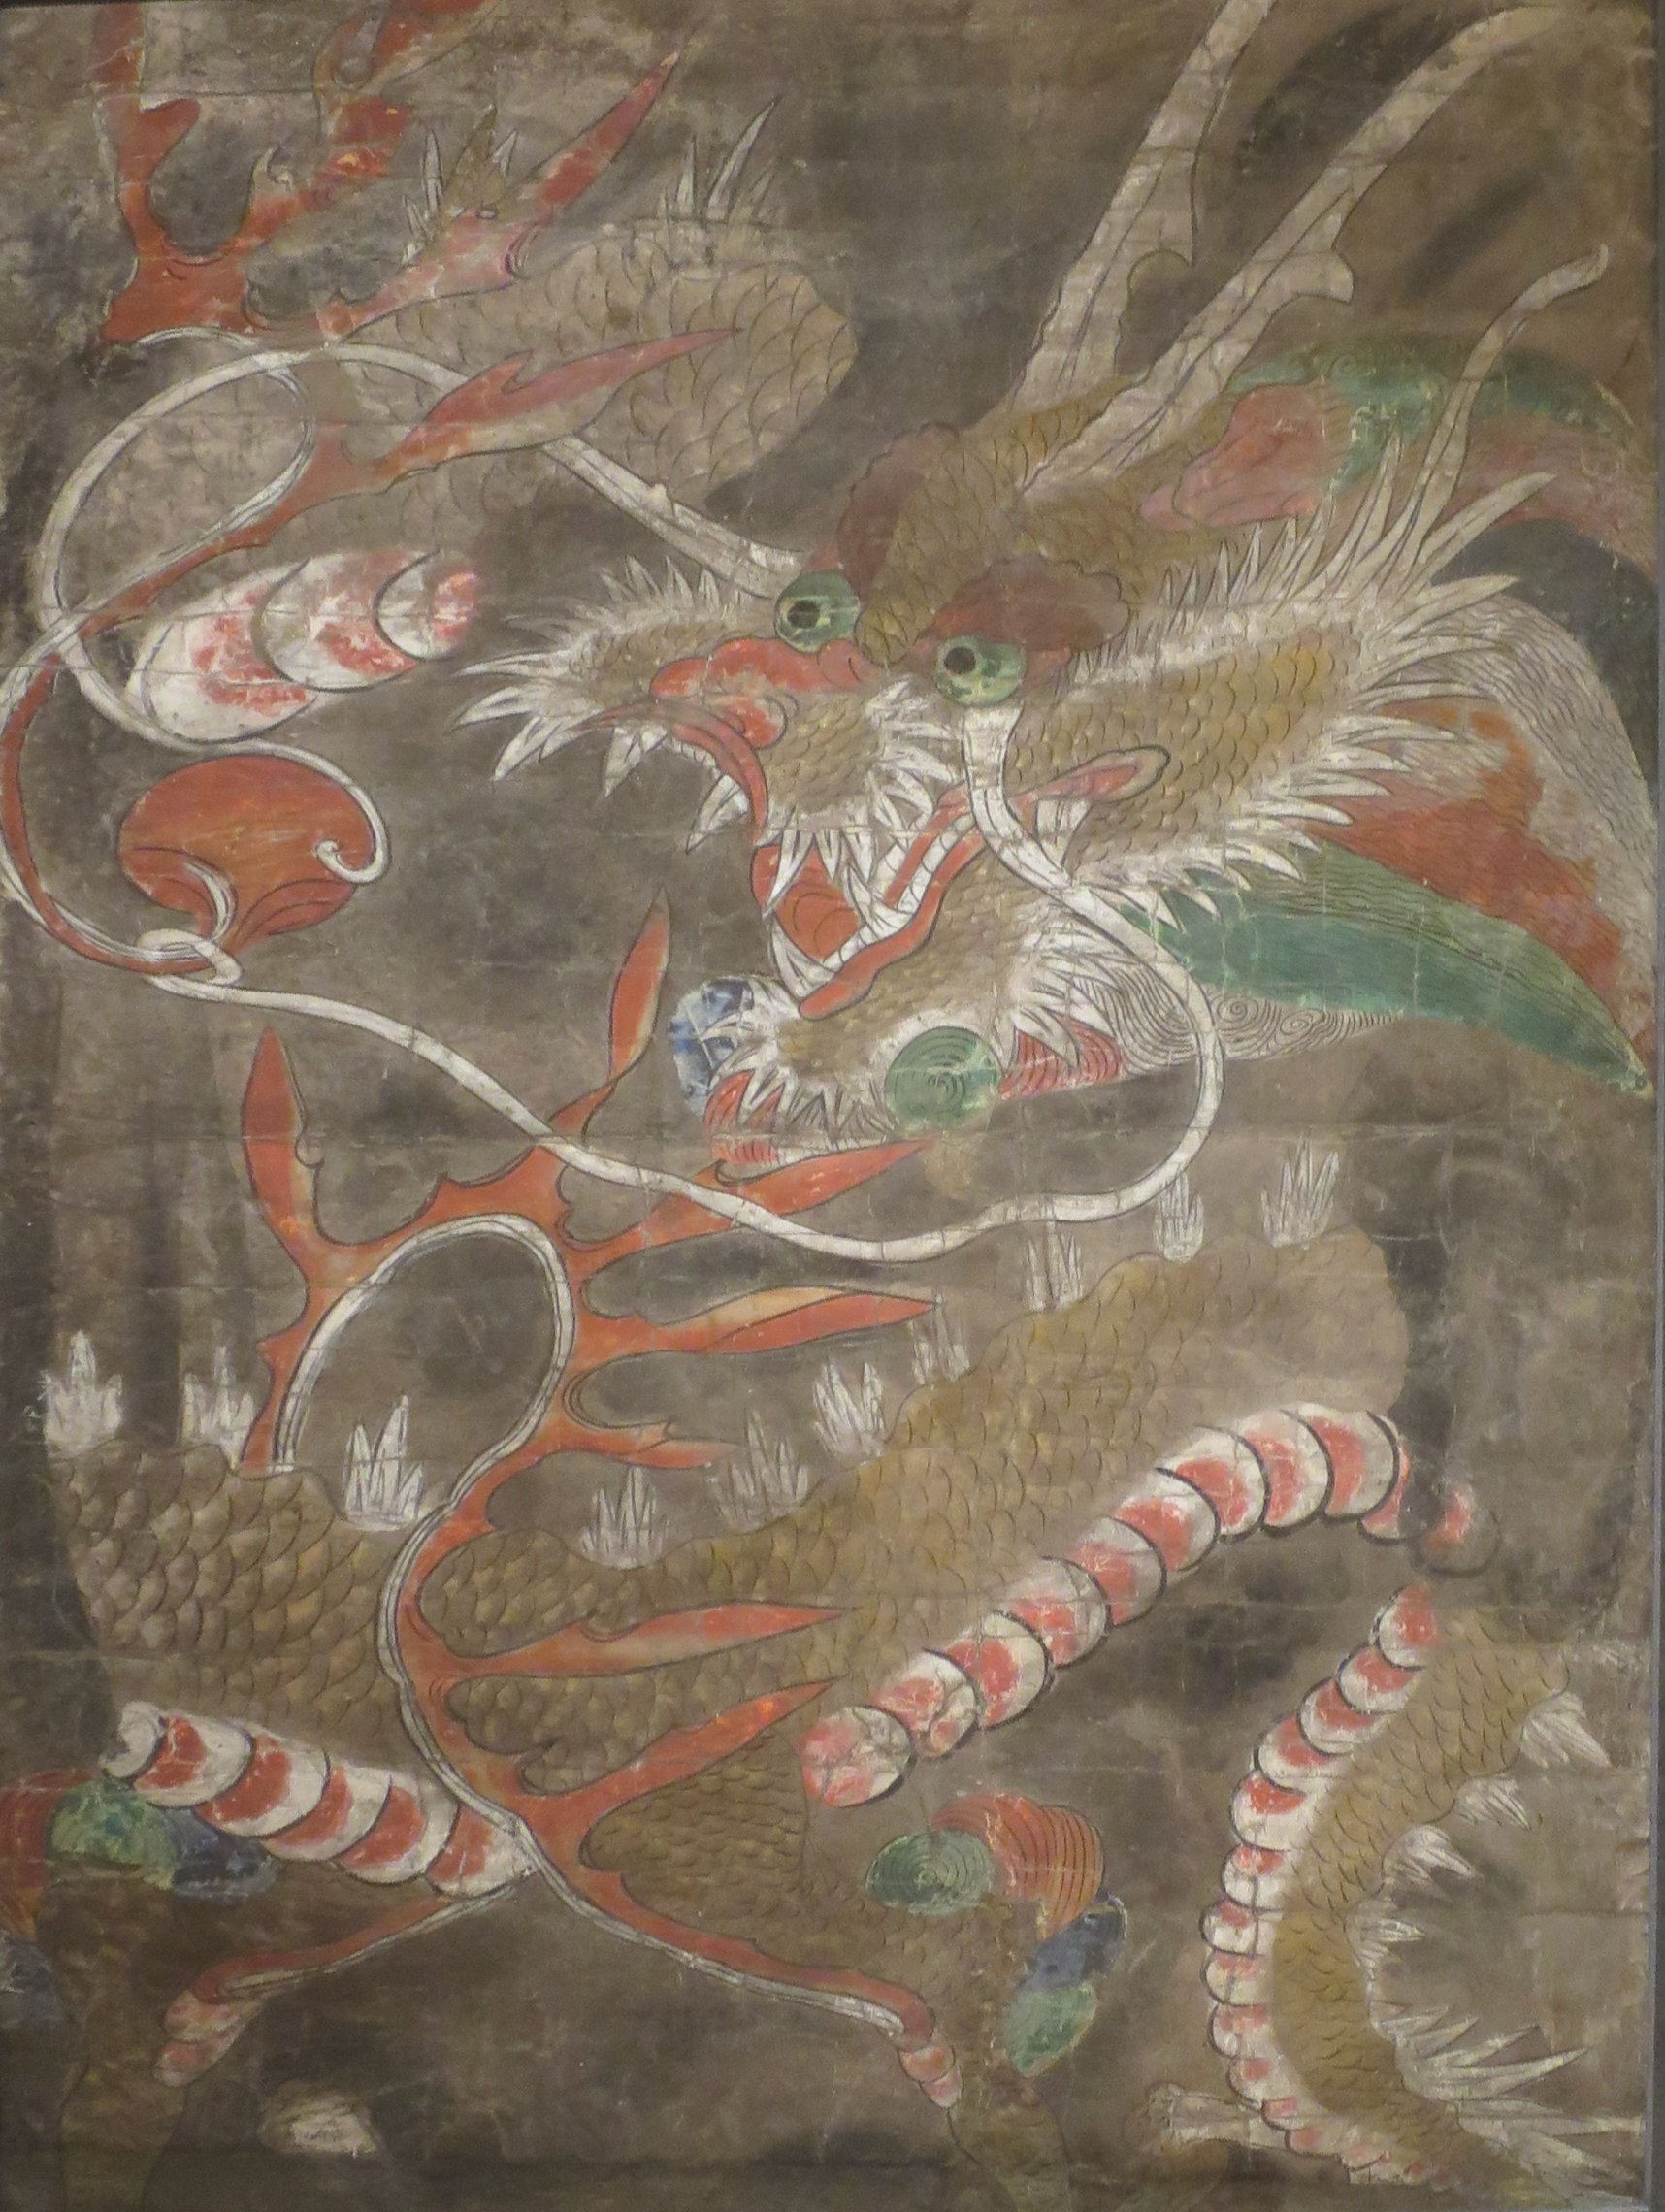 Korean Dragon: File:Korean Ink And Color Painting Of Dragon, 18th Century